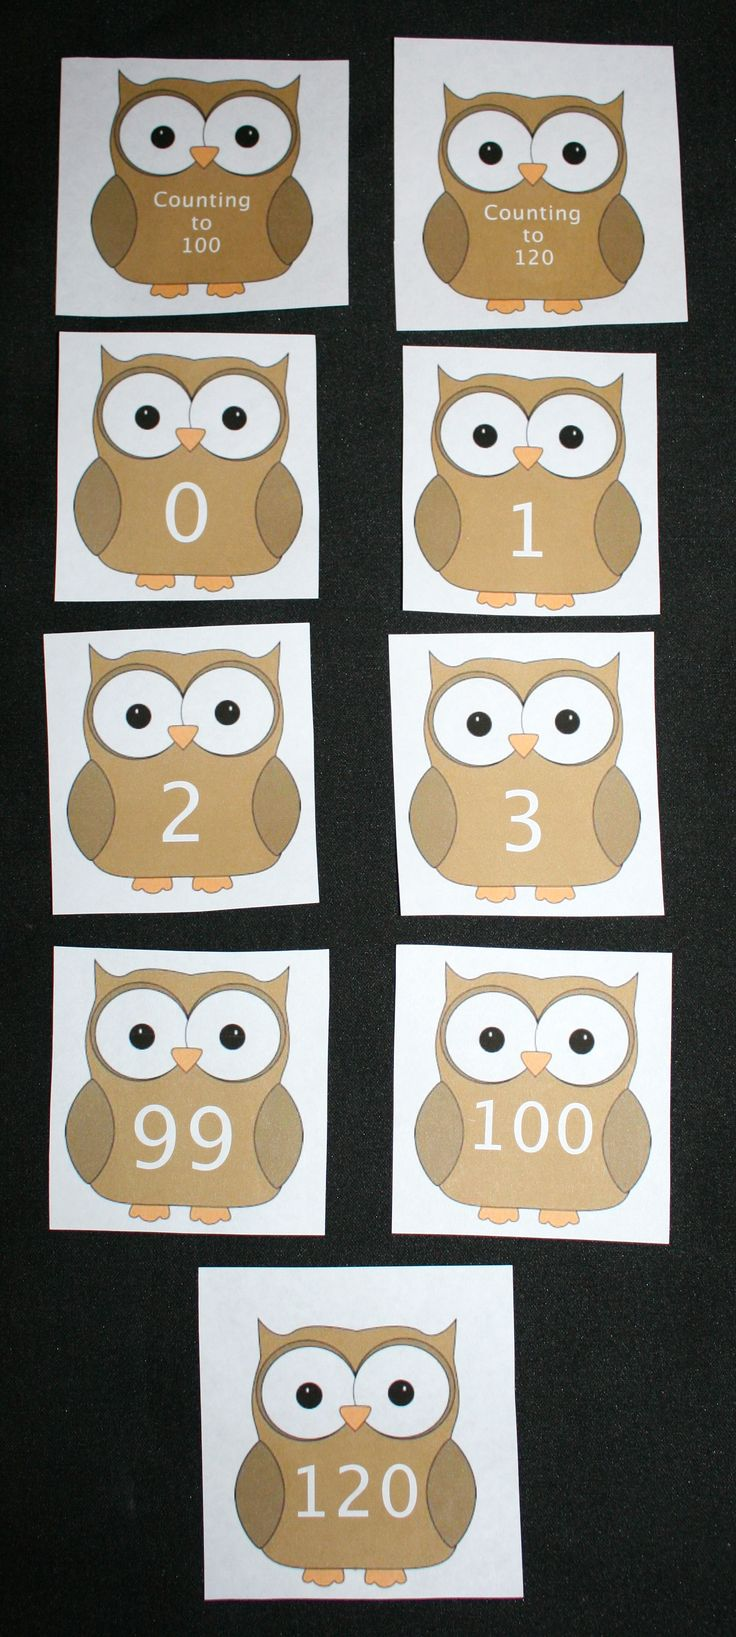 FREE Counting to 120 owl-themed cards. Includes covers for Counting to 100 + a cover for Counting to 120 for making a mini book of KnOWLedge. Put an owl a day up and count up to 100 Day; sort into piles of odd & even; play Whooooo is holding  the greater or less than owl card?